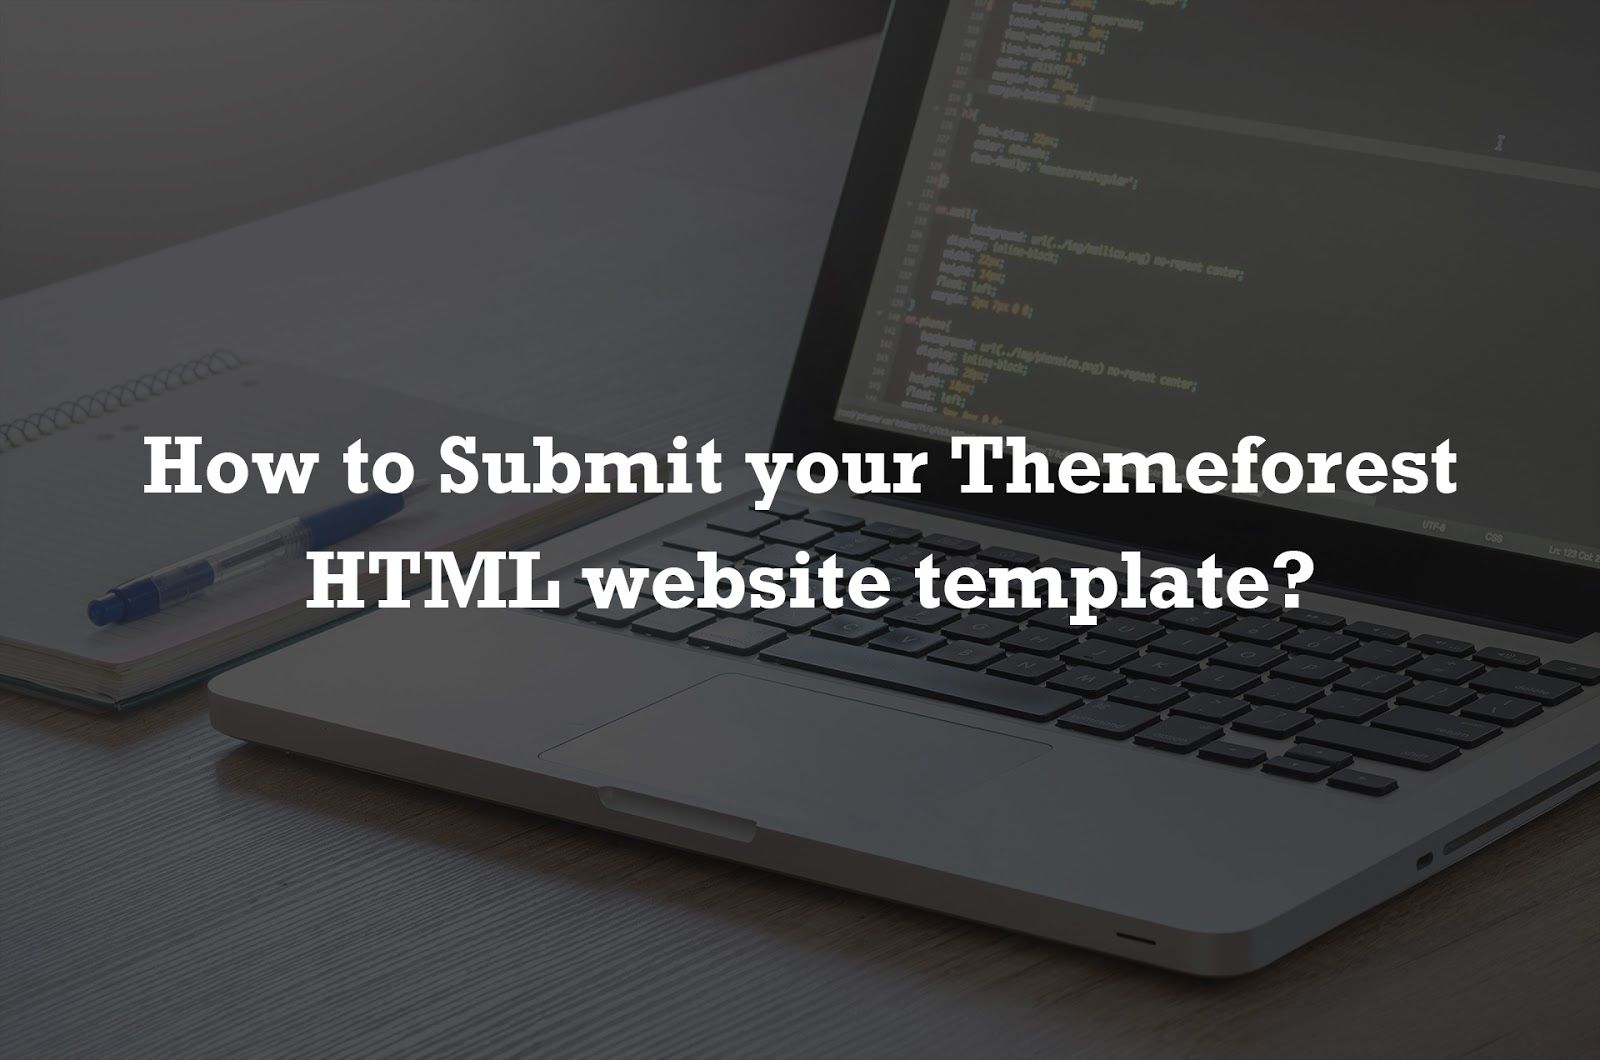 How to Submit ThemeForest HTML Website Templates?